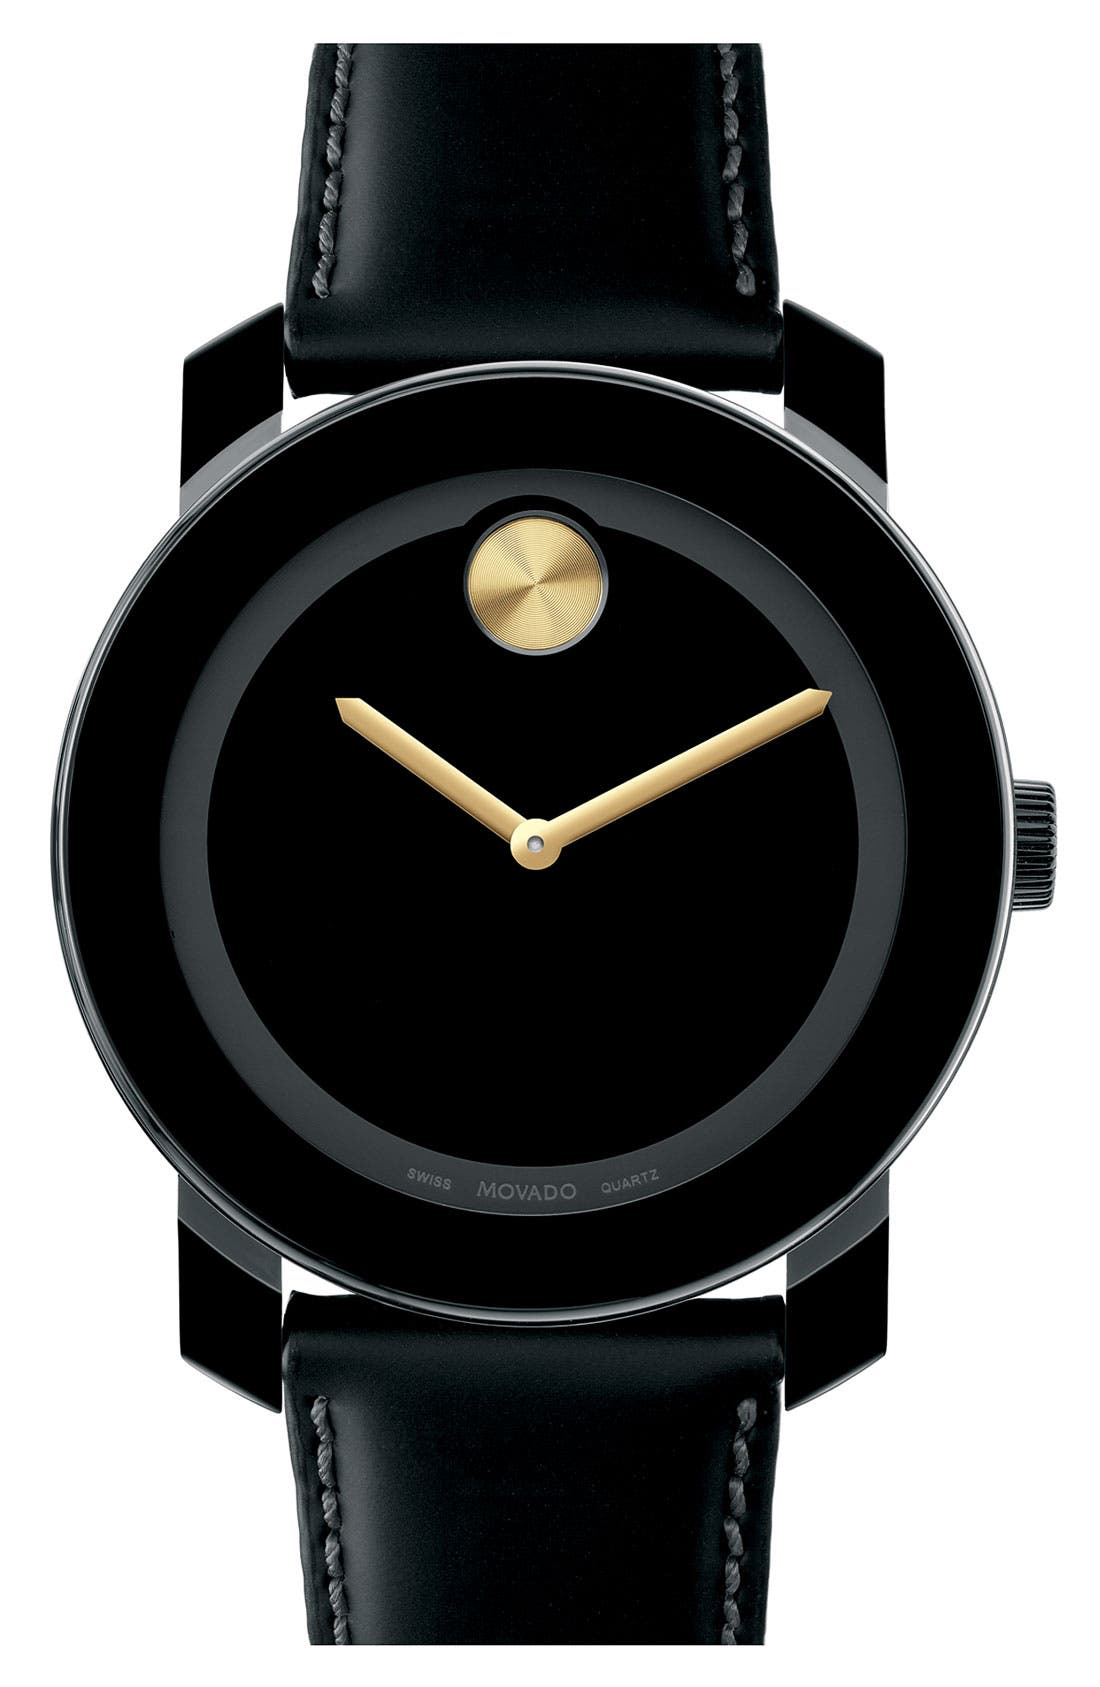 Main Image - Movado 'Large Bold' Metallic Marker Watch, 42mm (Regular Retail Price: $395.00)